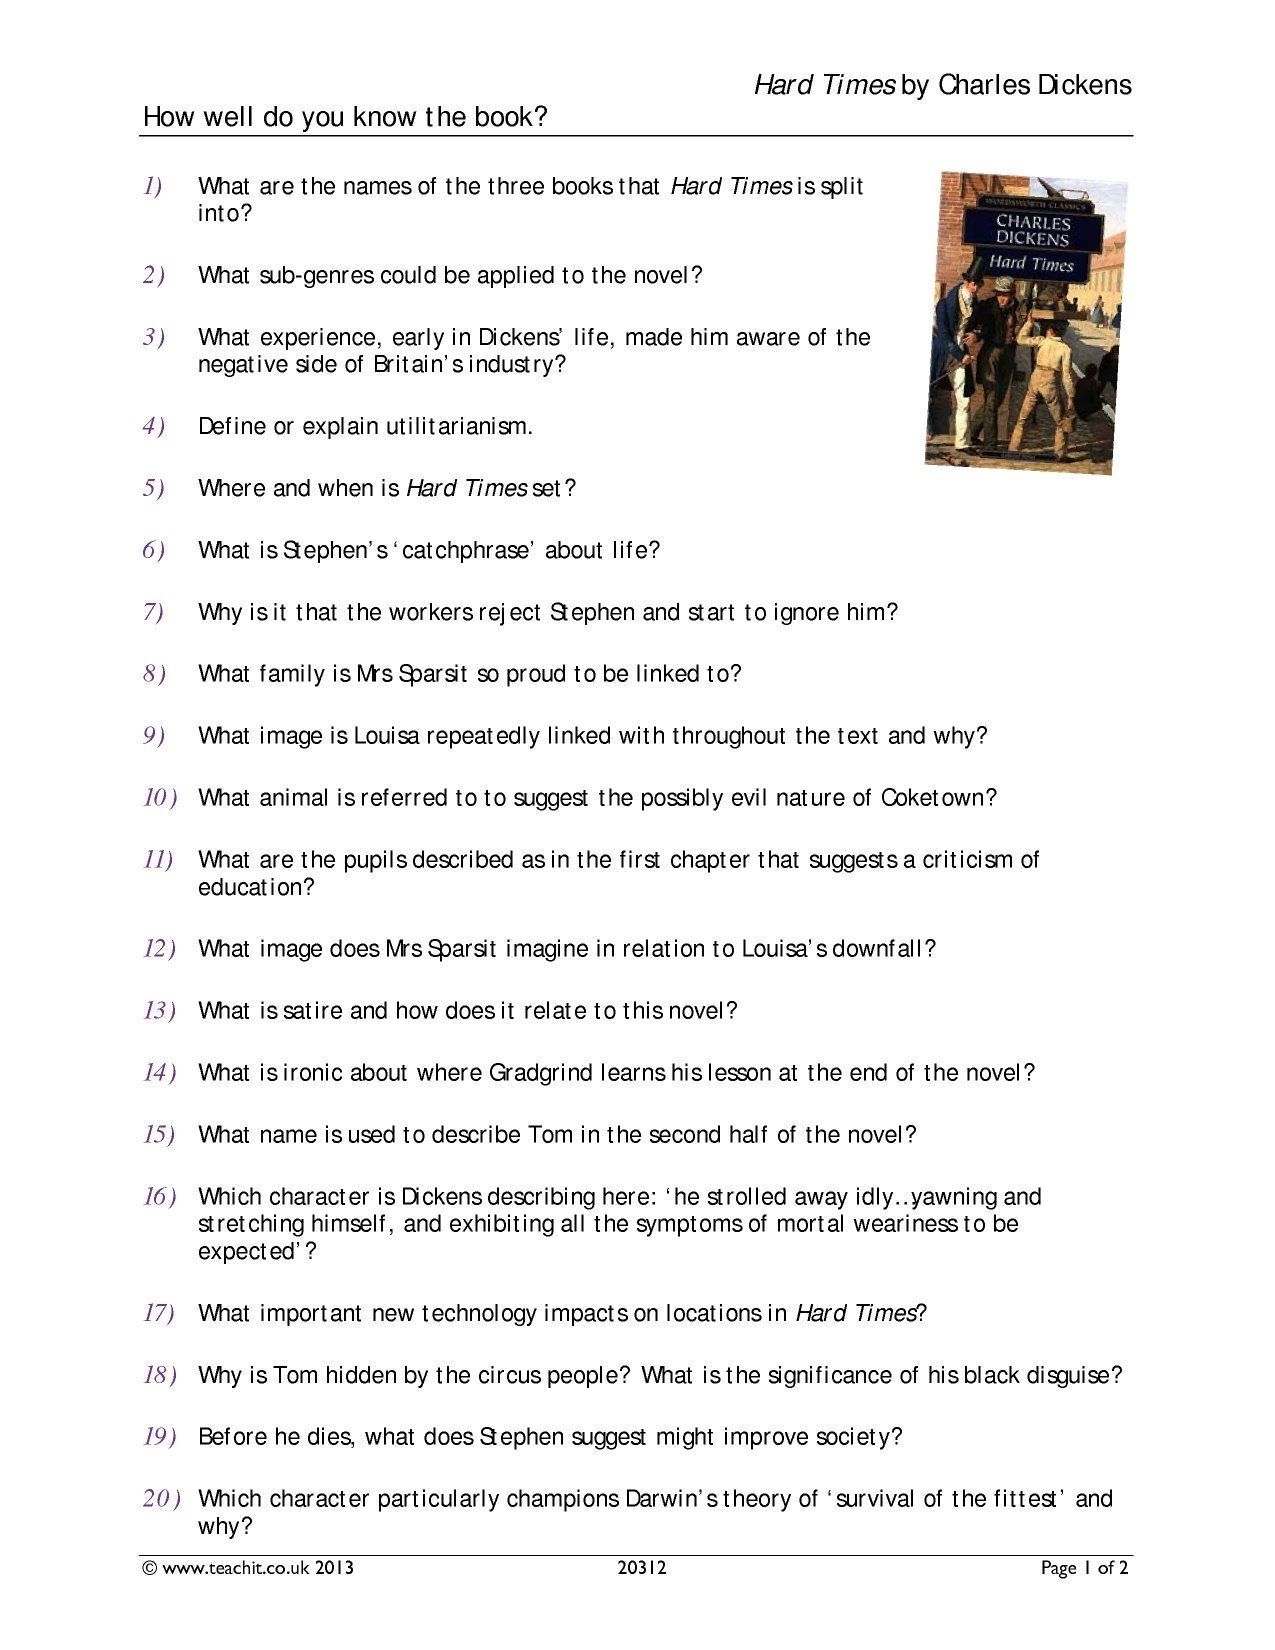 How well do you know the book? Business plan template